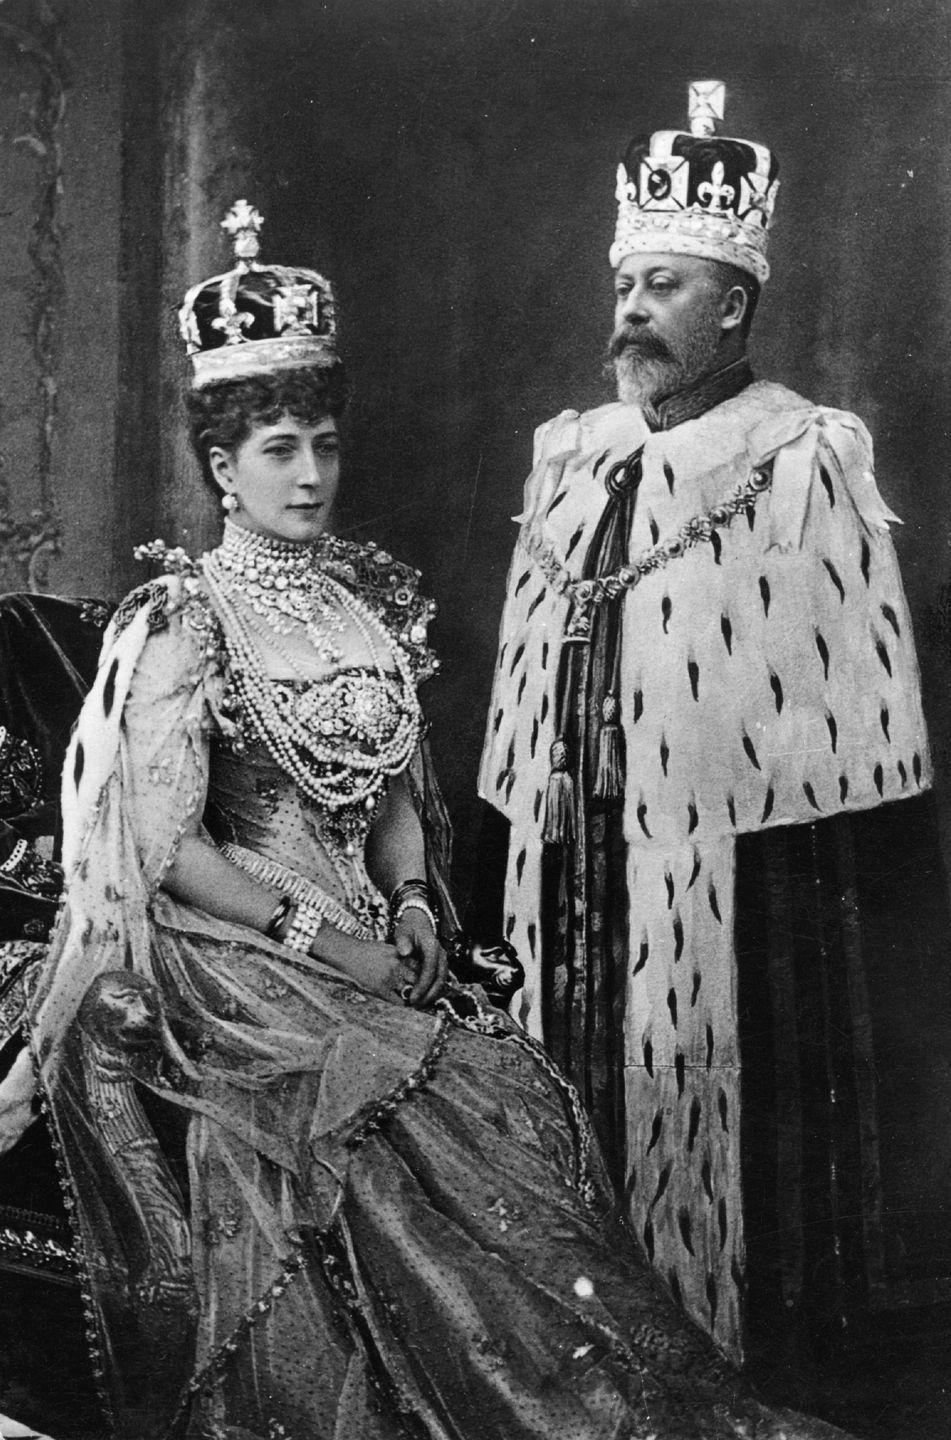 "<p>It's been reported that King Edward VII, who ruled the United Kingdom from 1901–1910, <a href=""https://www.thrillist.com/entertainment/nation/royal-affairs-kings-and-queens-who-had-mistresses-and-illegitimate-children"" rel=""nofollow noopener"" target=""_blank"" data-ylk=""slk:had more than 50 affairs"" class=""link rapid-noclick-resp"">had more than 50 affairs</a>, including with Winston Churchill's mom. He's presumed to have fathered many children outside his marriage, though he never acknowledged them. He had six legitimate heirs to the throne with his wife Queen Alexandra, including Queen Elizabeth II's grandfather George V. Sadly, one of the six died as a child.</p>"